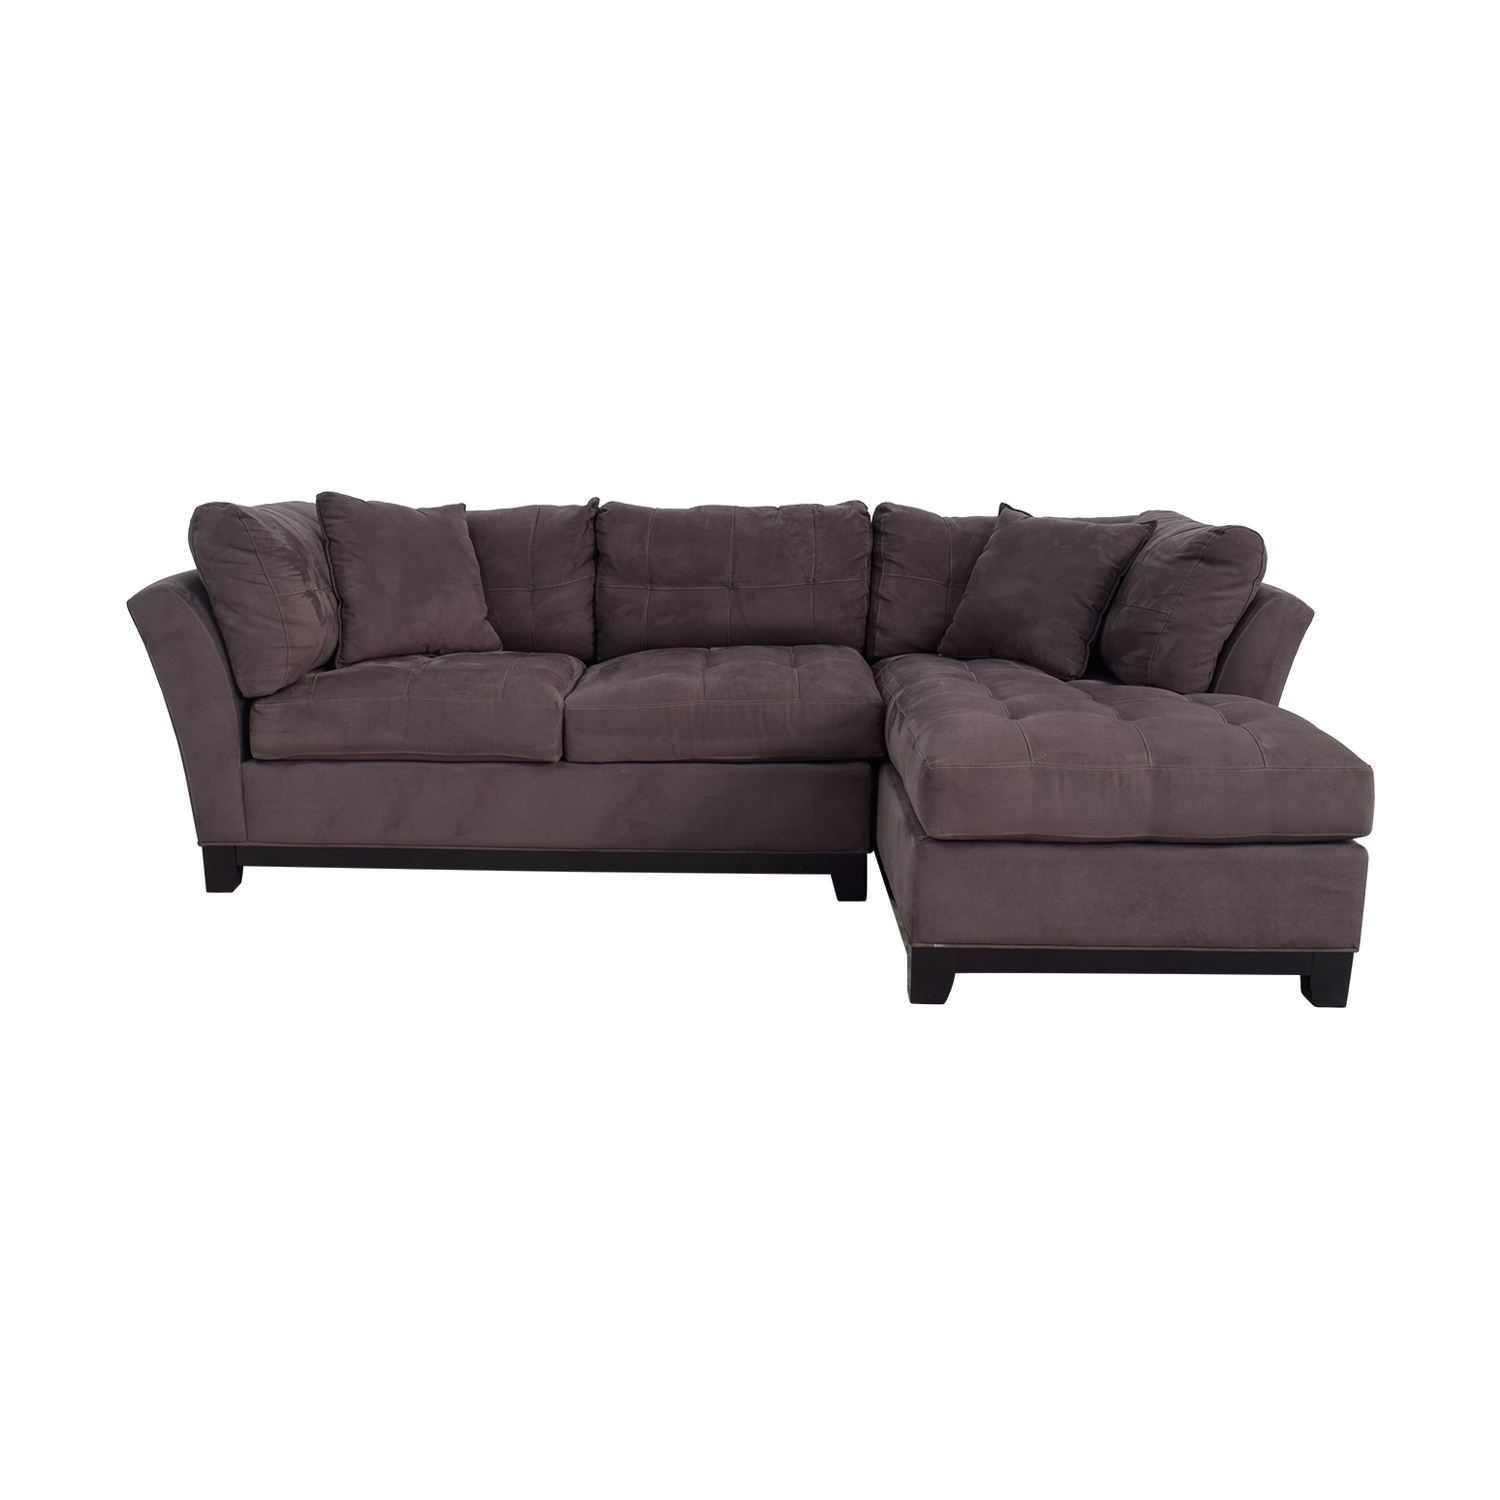 [%64% Off – Raymour & Flanigan Raymour & Flanigan Cindy Crawford Throughout Most Current Sectional Sofas At Raymour And Flanigan|Sectional Sofas At Raymour And Flanigan For Famous 64% Off – Raymour & Flanigan Raymour & Flanigan Cindy Crawford|Well Liked Sectional Sofas At Raymour And Flanigan Regarding 64% Off – Raymour & Flanigan Raymour & Flanigan Cindy Crawford|Well Known 64% Off – Raymour & Flanigan Raymour & Flanigan Cindy Crawford Within Sectional Sofas At Raymour And Flanigan%] (View 3 of 15)